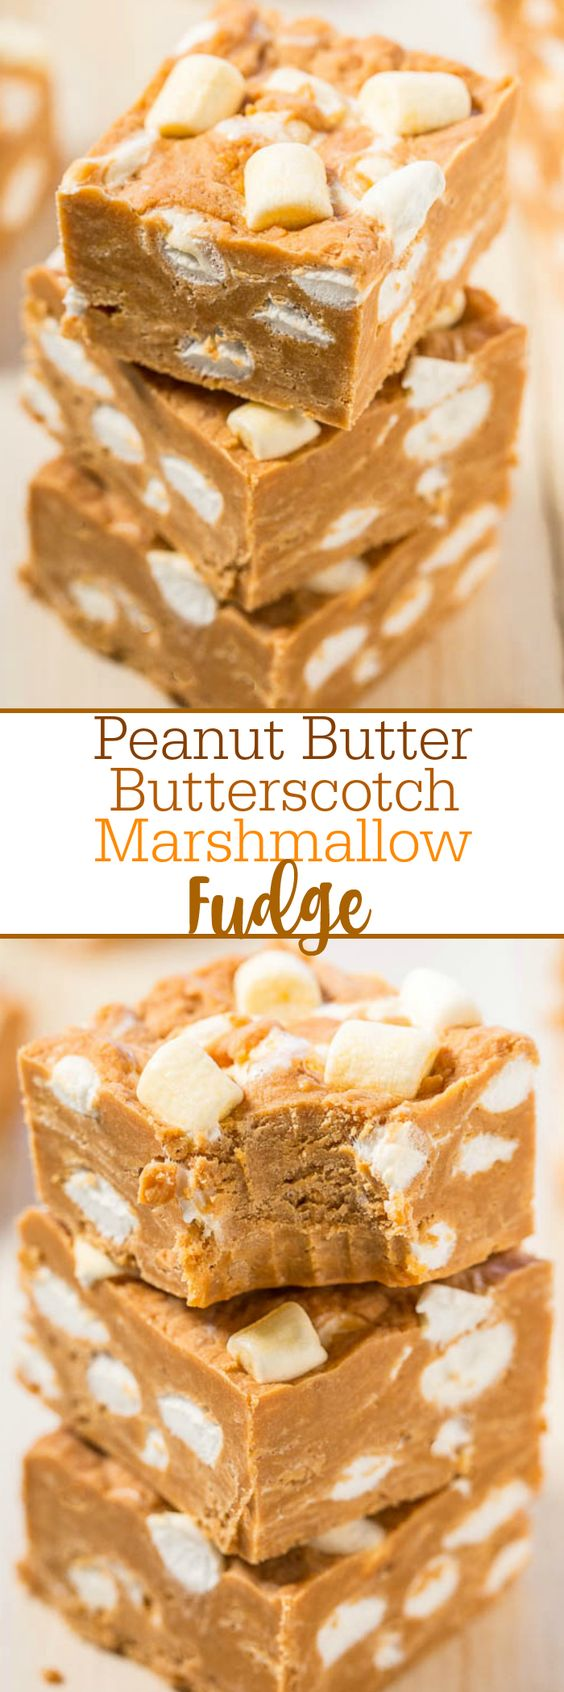 Peanut Butter Butterscotch Marshmallow Fudge - Easy, no-bake fudge with bold peanut butter flavor!! Peanut butter lovers will go nuts! The marshmallows are like biting into soft clouds amidst dense, rich fudge!!